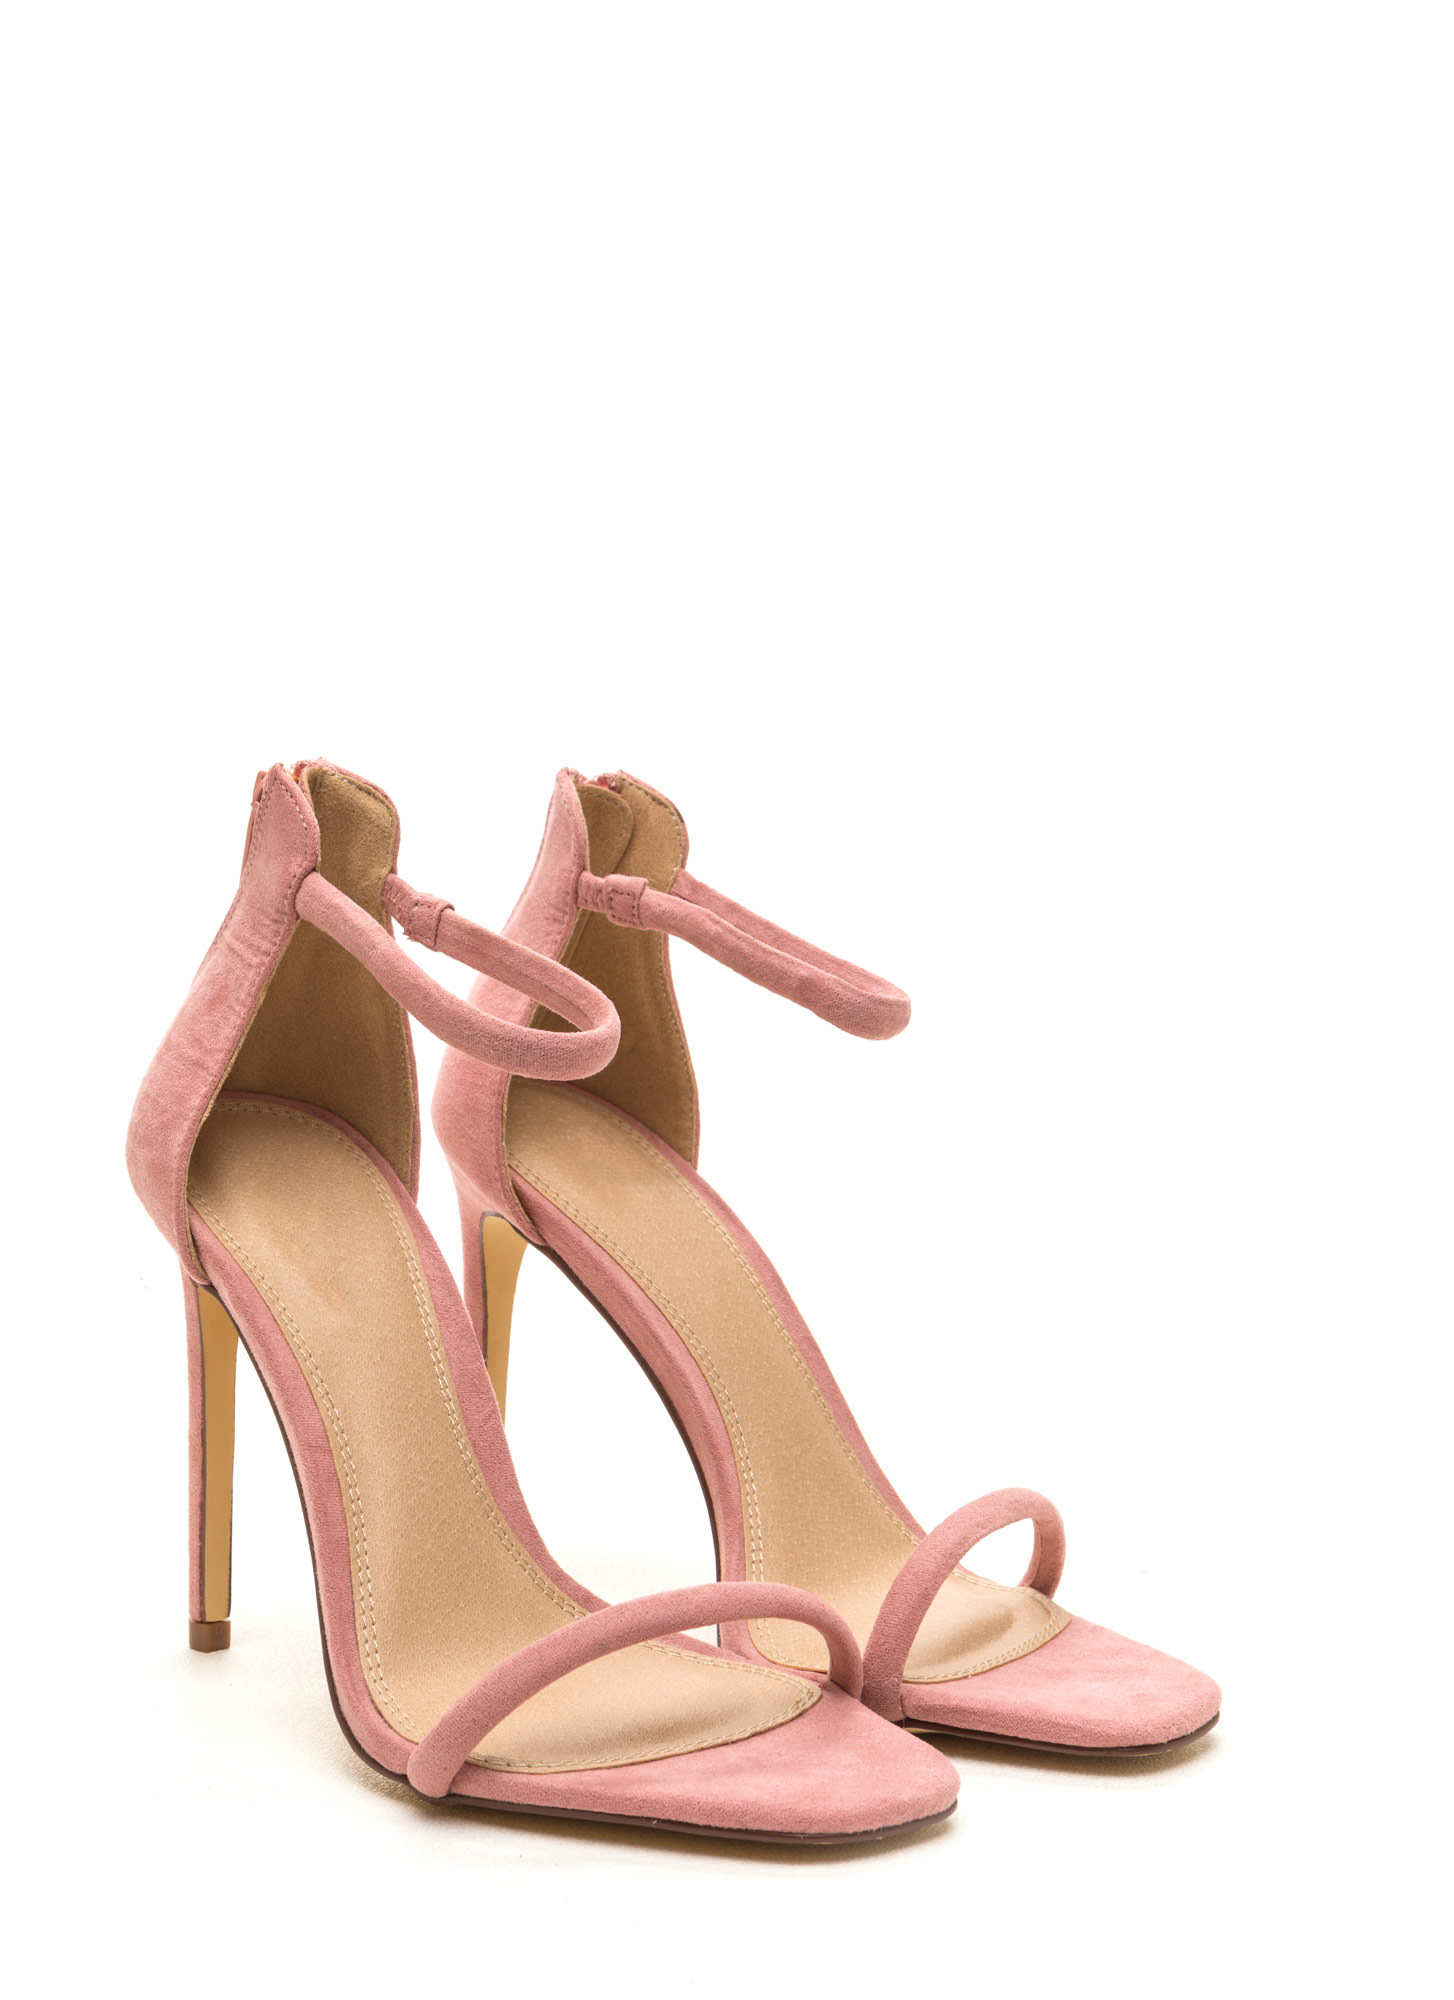 Just One Faux Suede Ankle Strap Heels DUSTYPINK